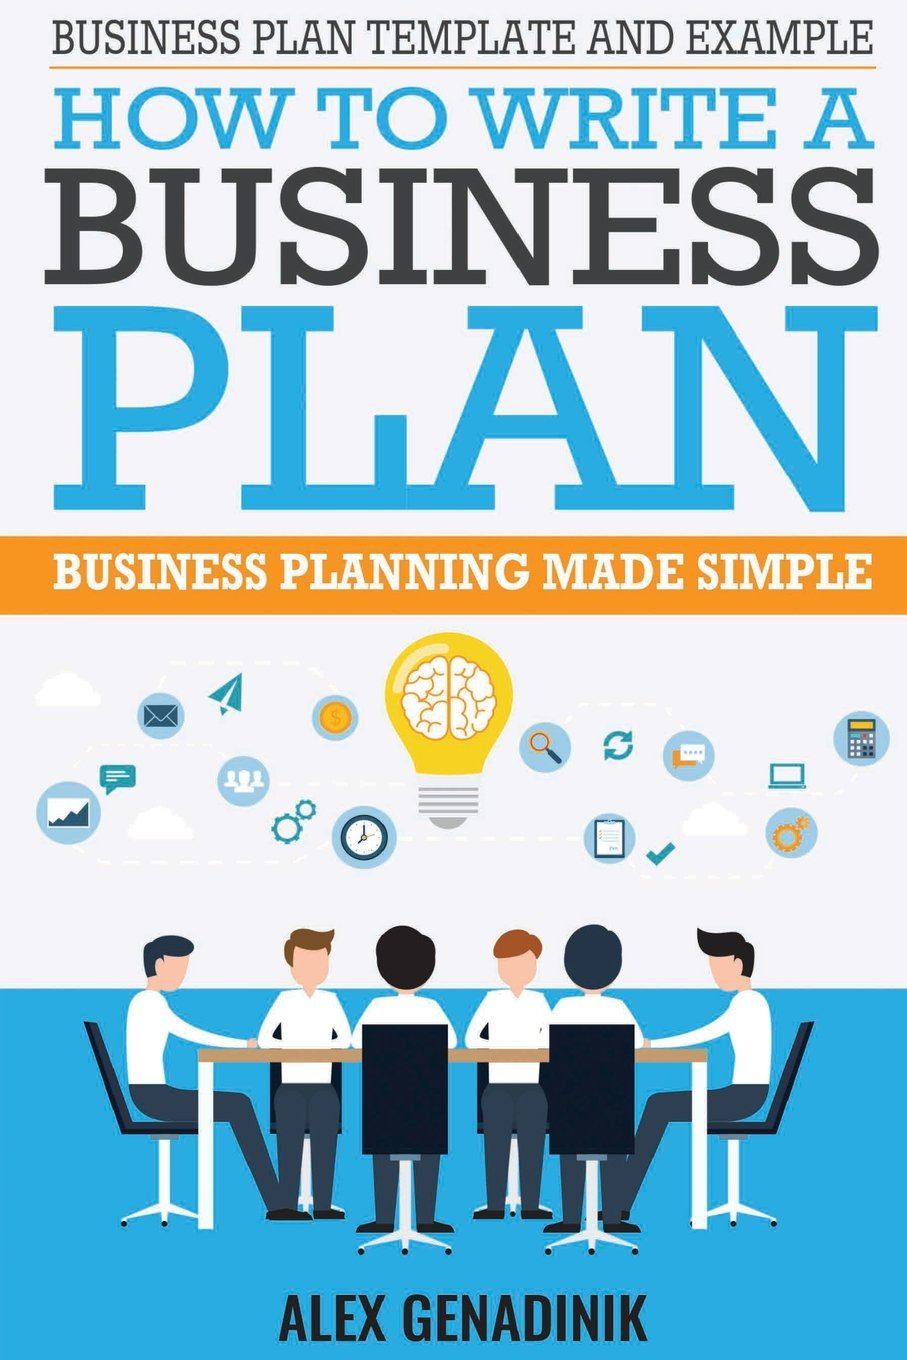 Business plan template and example how to write a business plan business plan template and example how to write a business plan business planning made simple alex genadinik 9781519741783 amazon books accmission